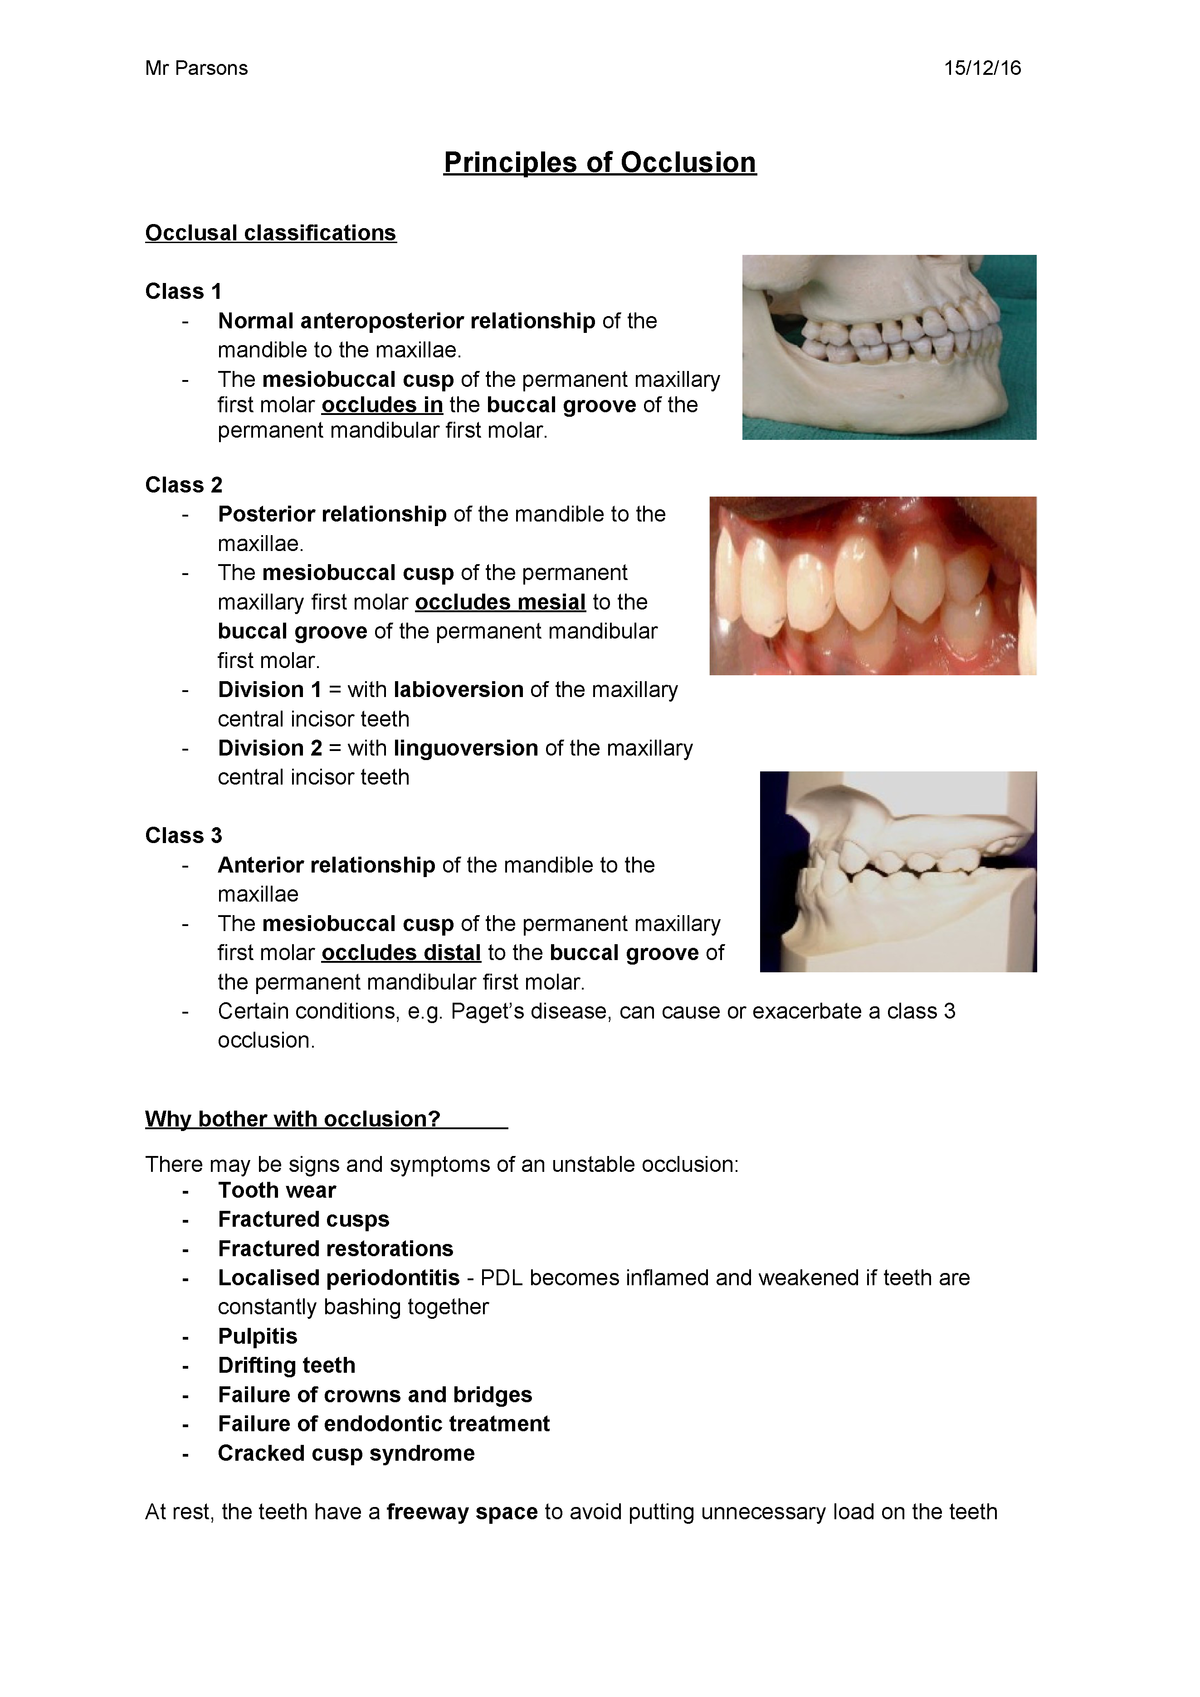 Principles of Occlusion - Basic Oral and Dental Care - StuDocu